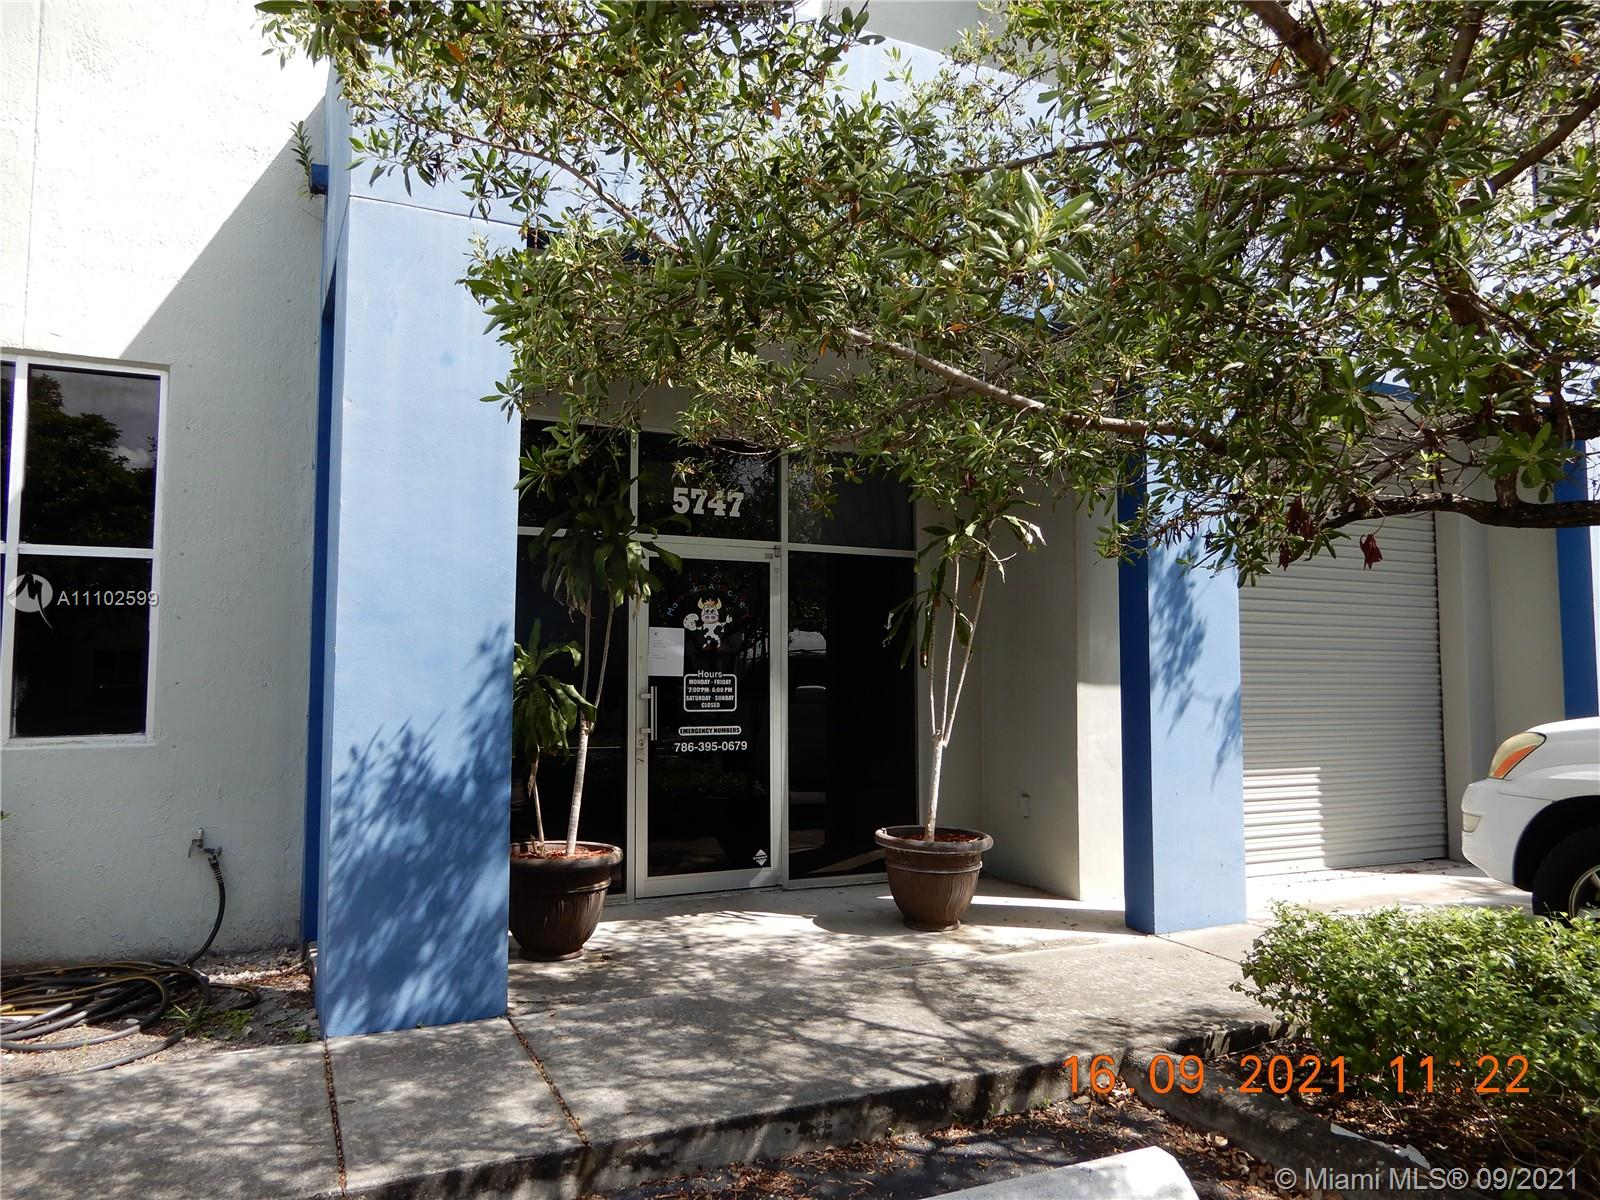 5747 NW 151st St #57447 For Sale A11102599, FL